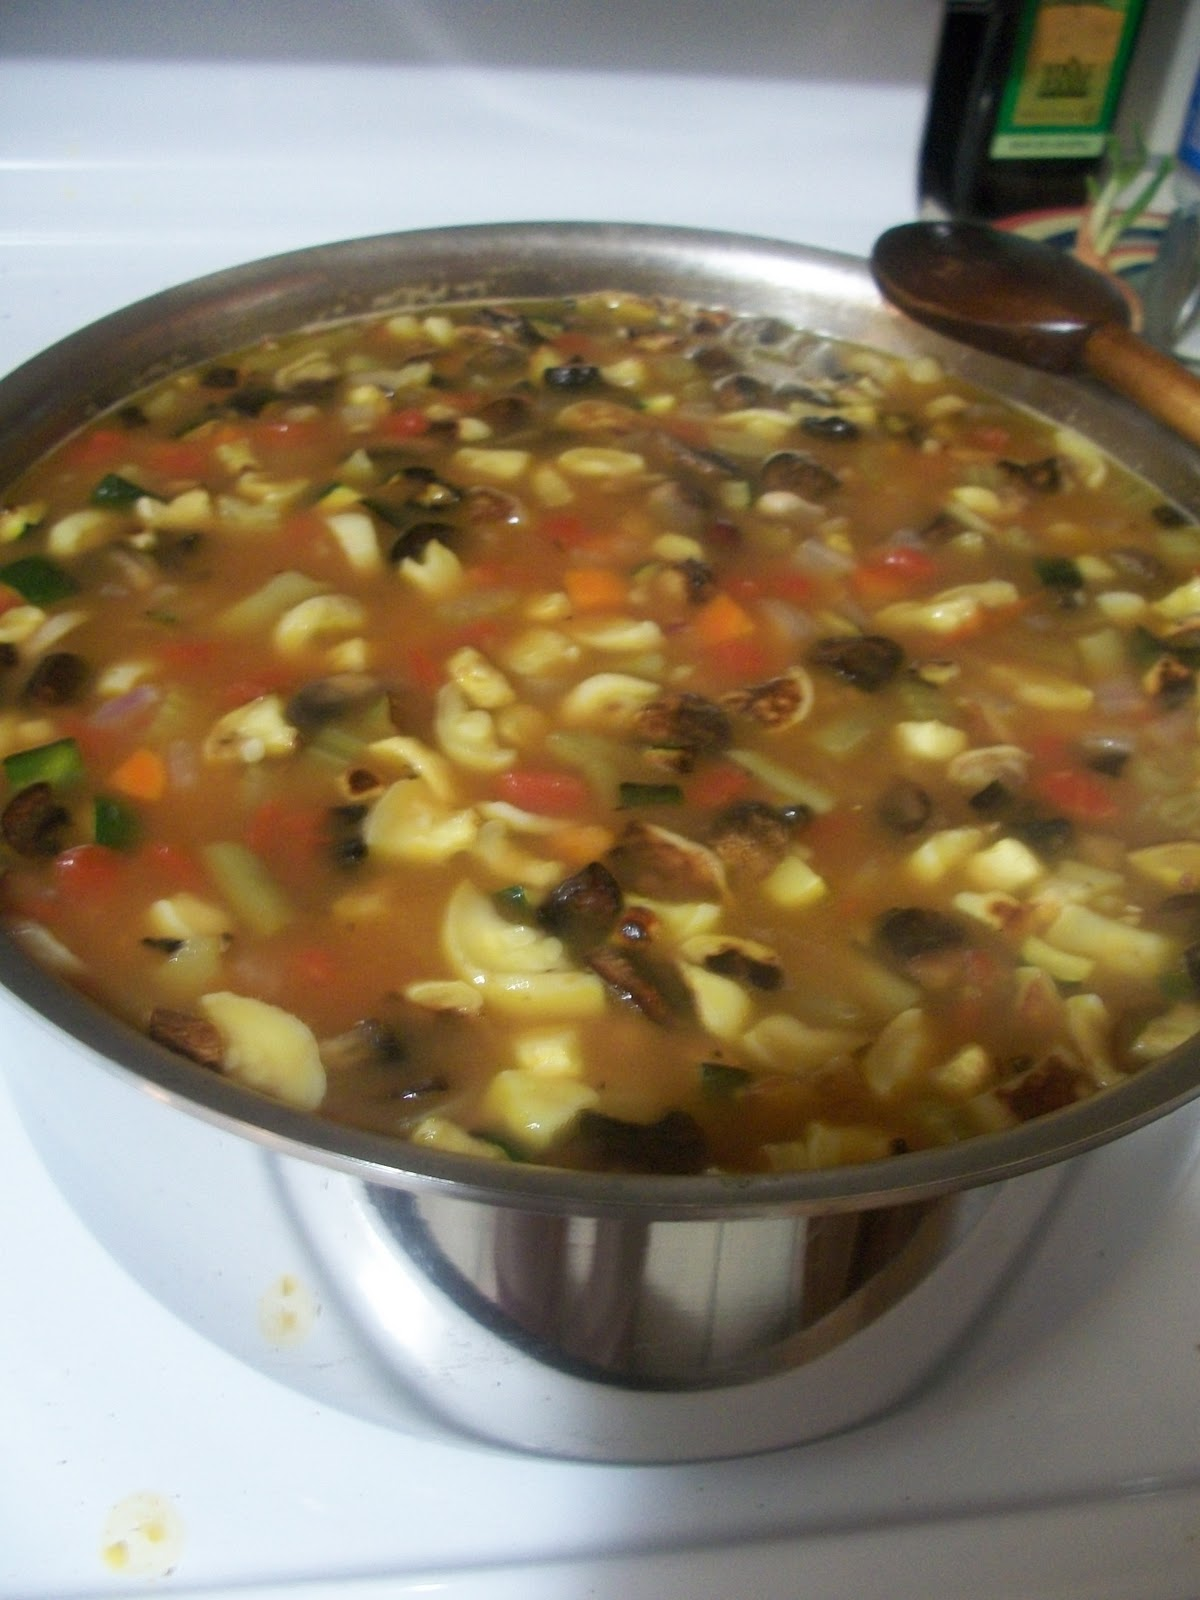 The Edible Givens: Roasted Vegetable Minestrone